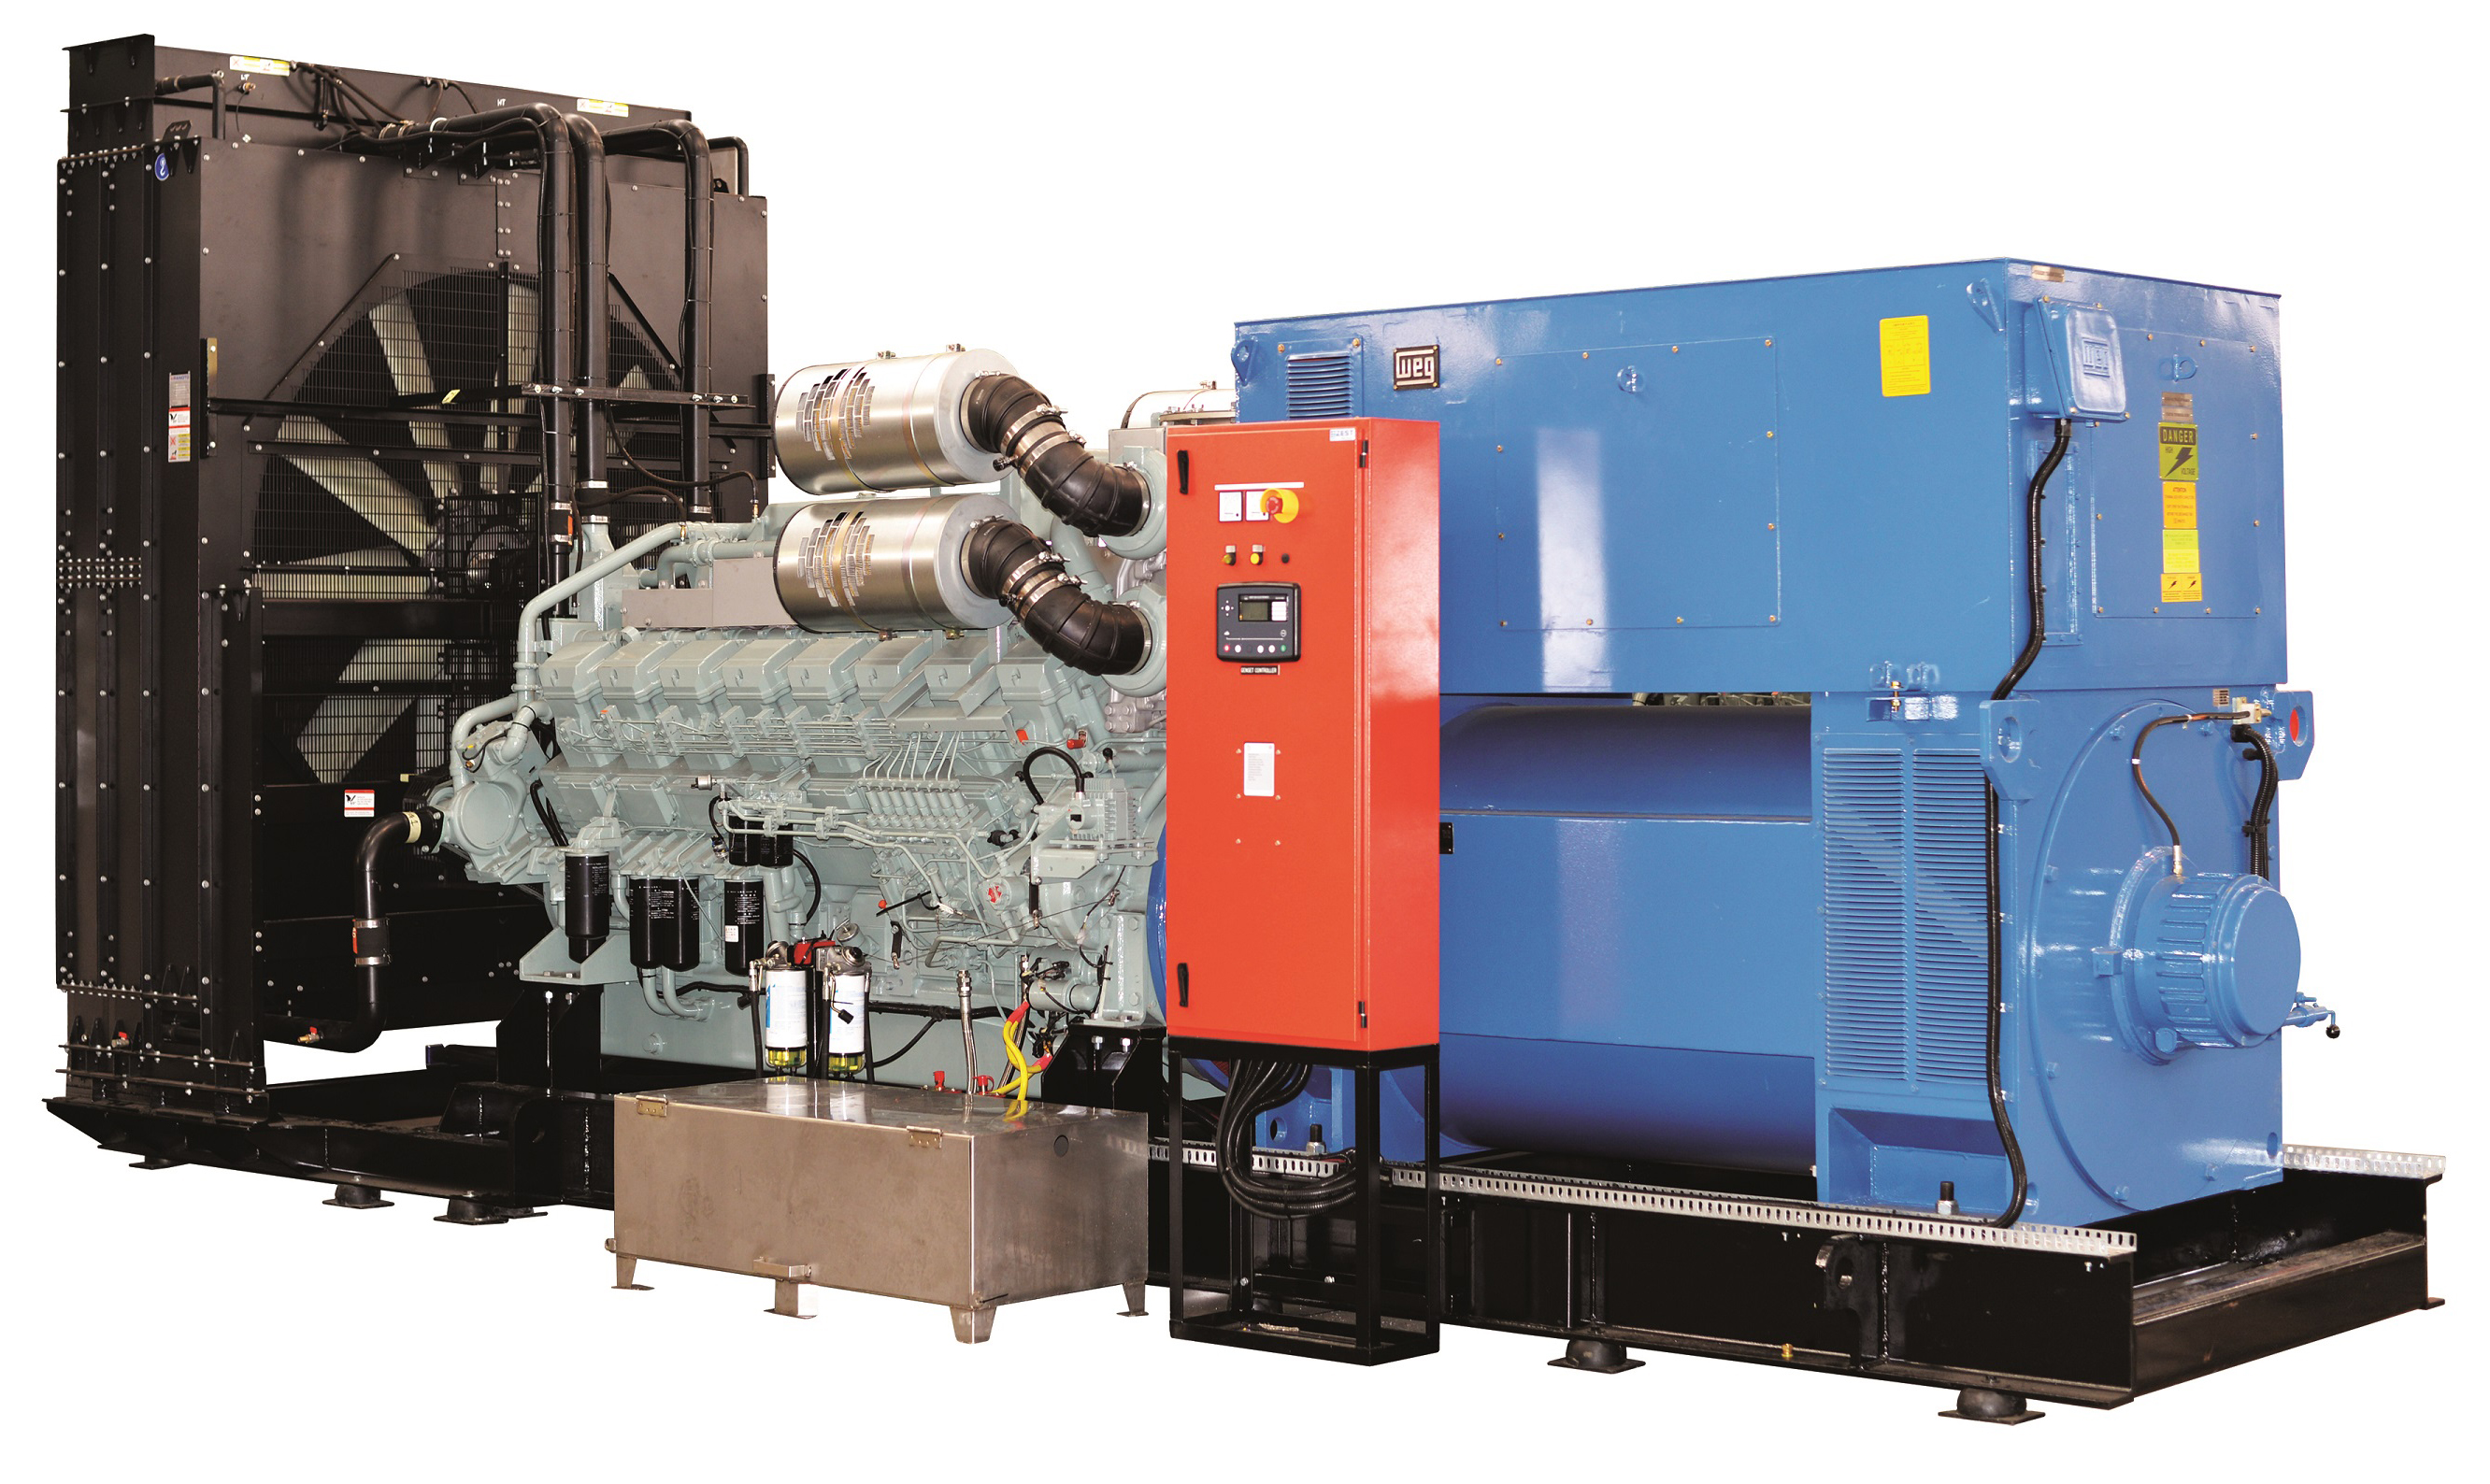 Gensets supplied to keep the lights on | Credible Carbon